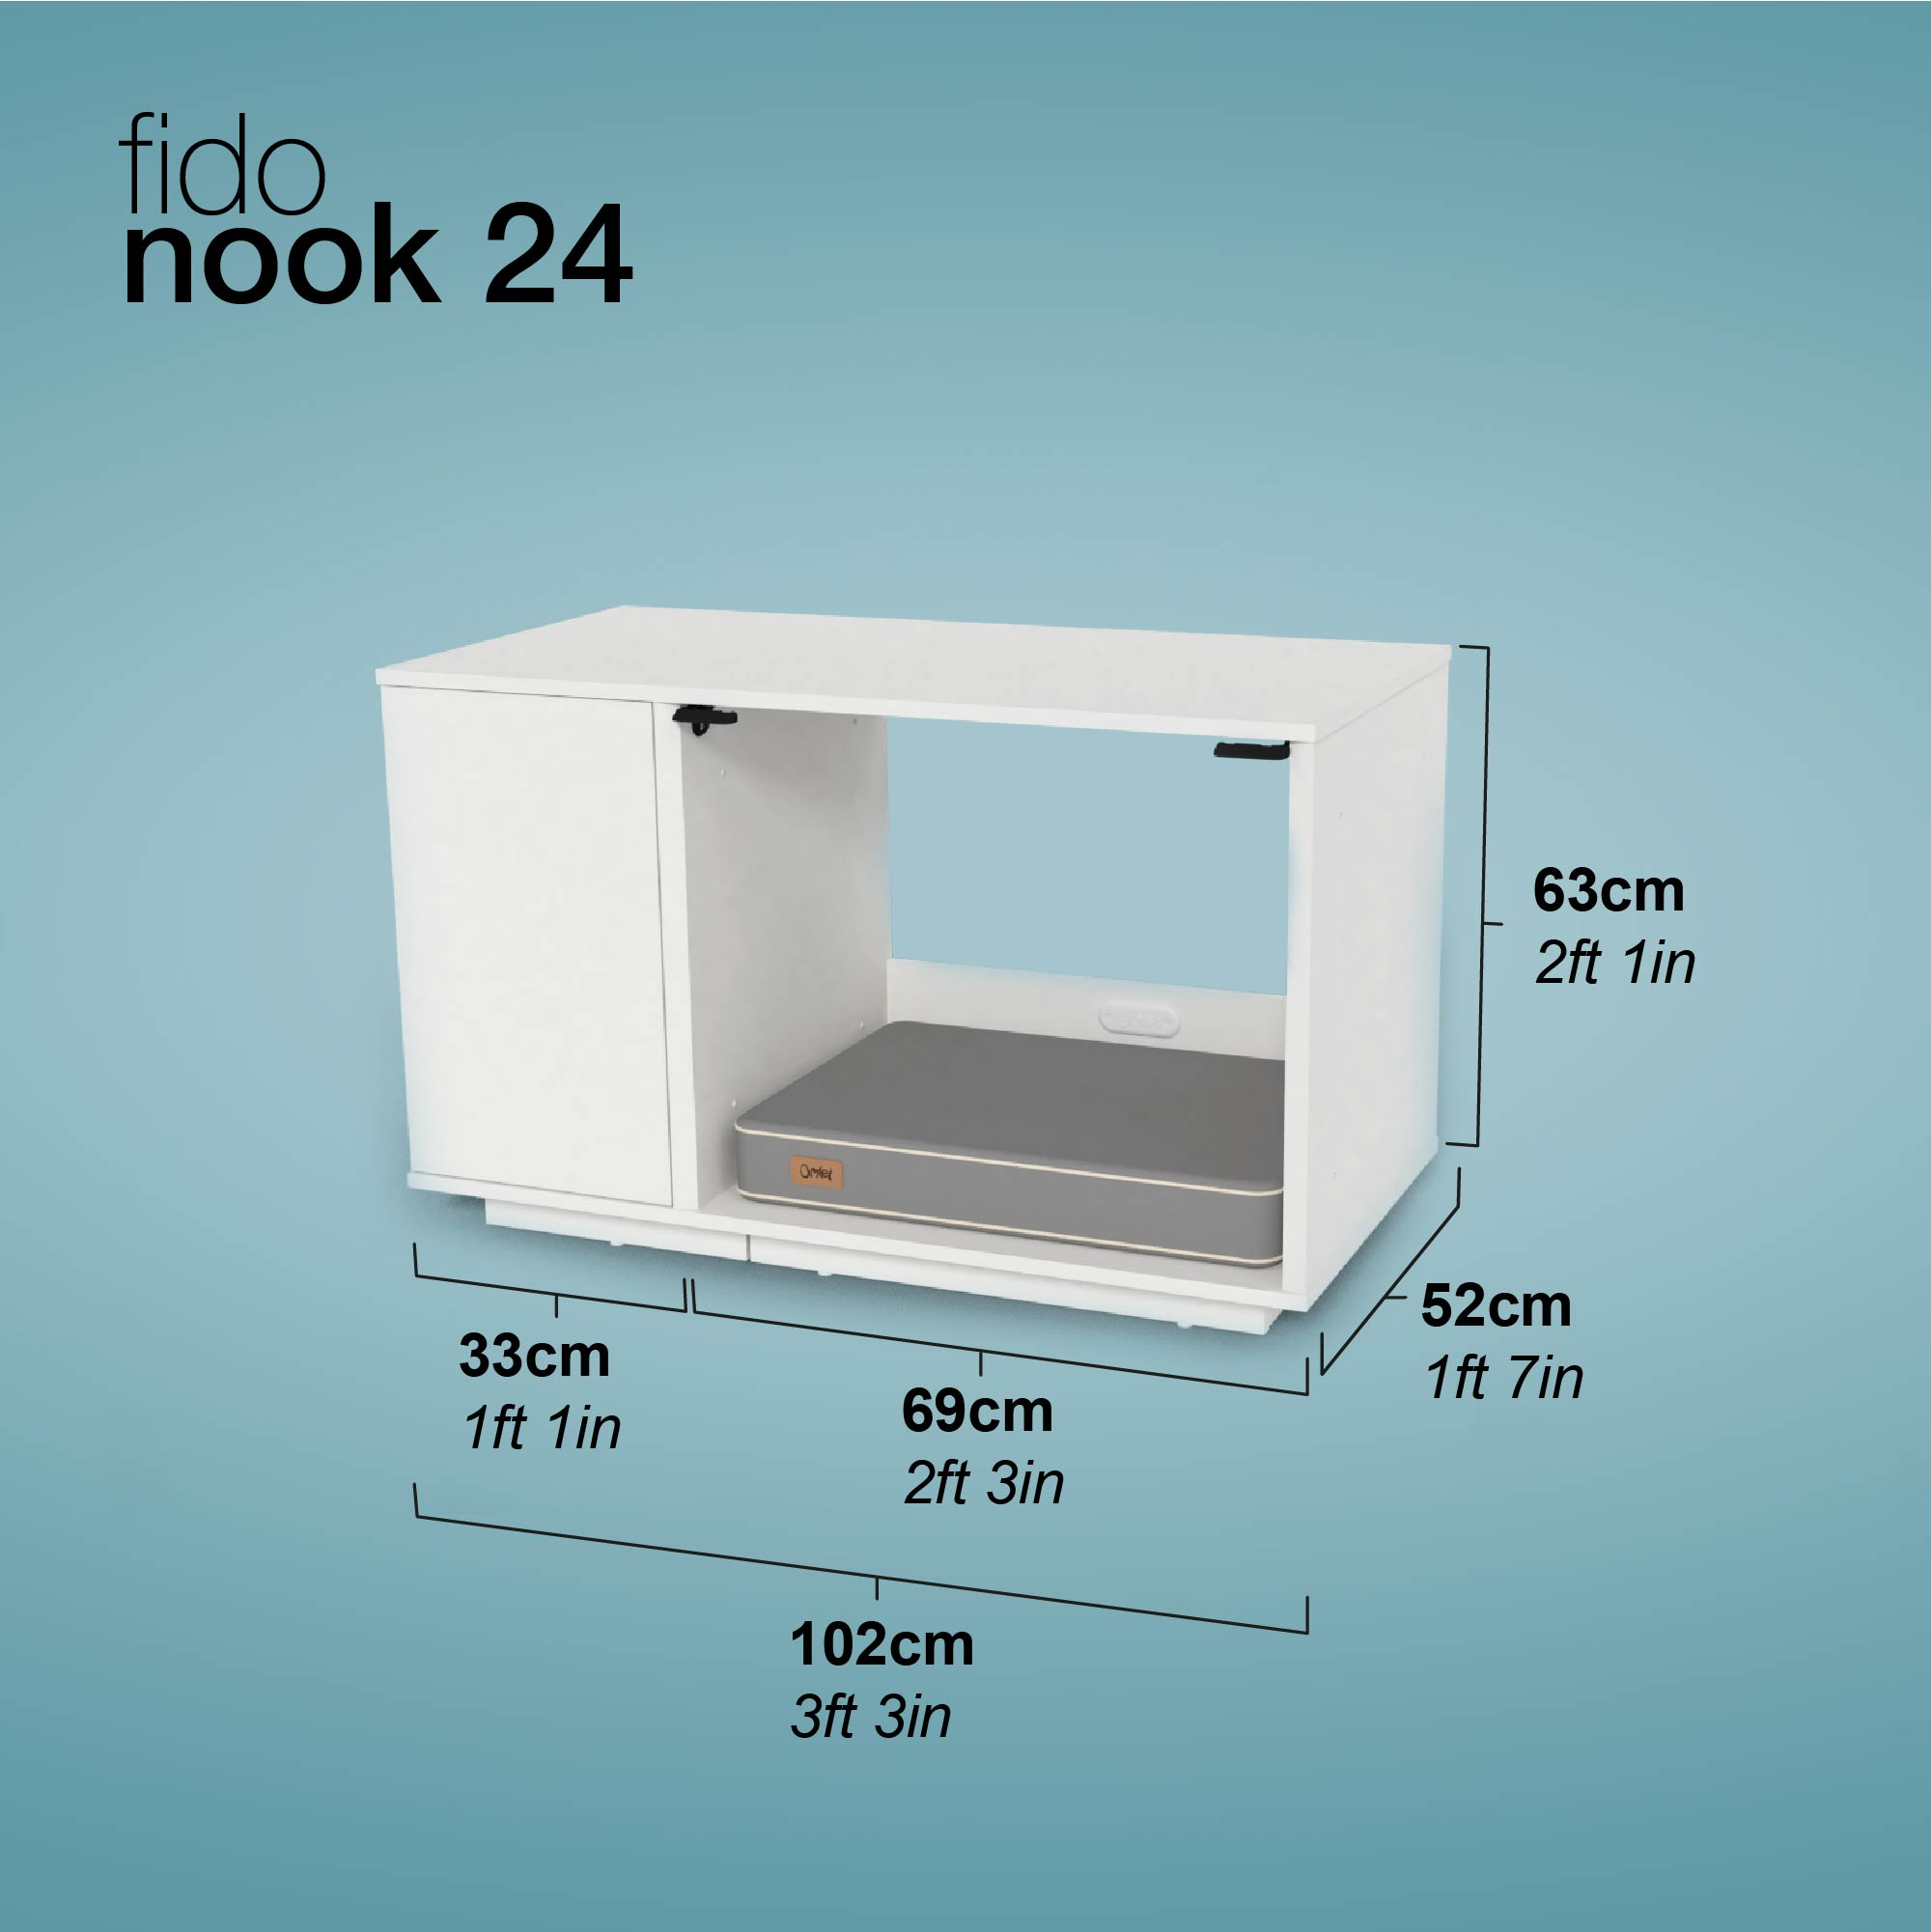 Fido Nook afmetingen en verpakking specificaties